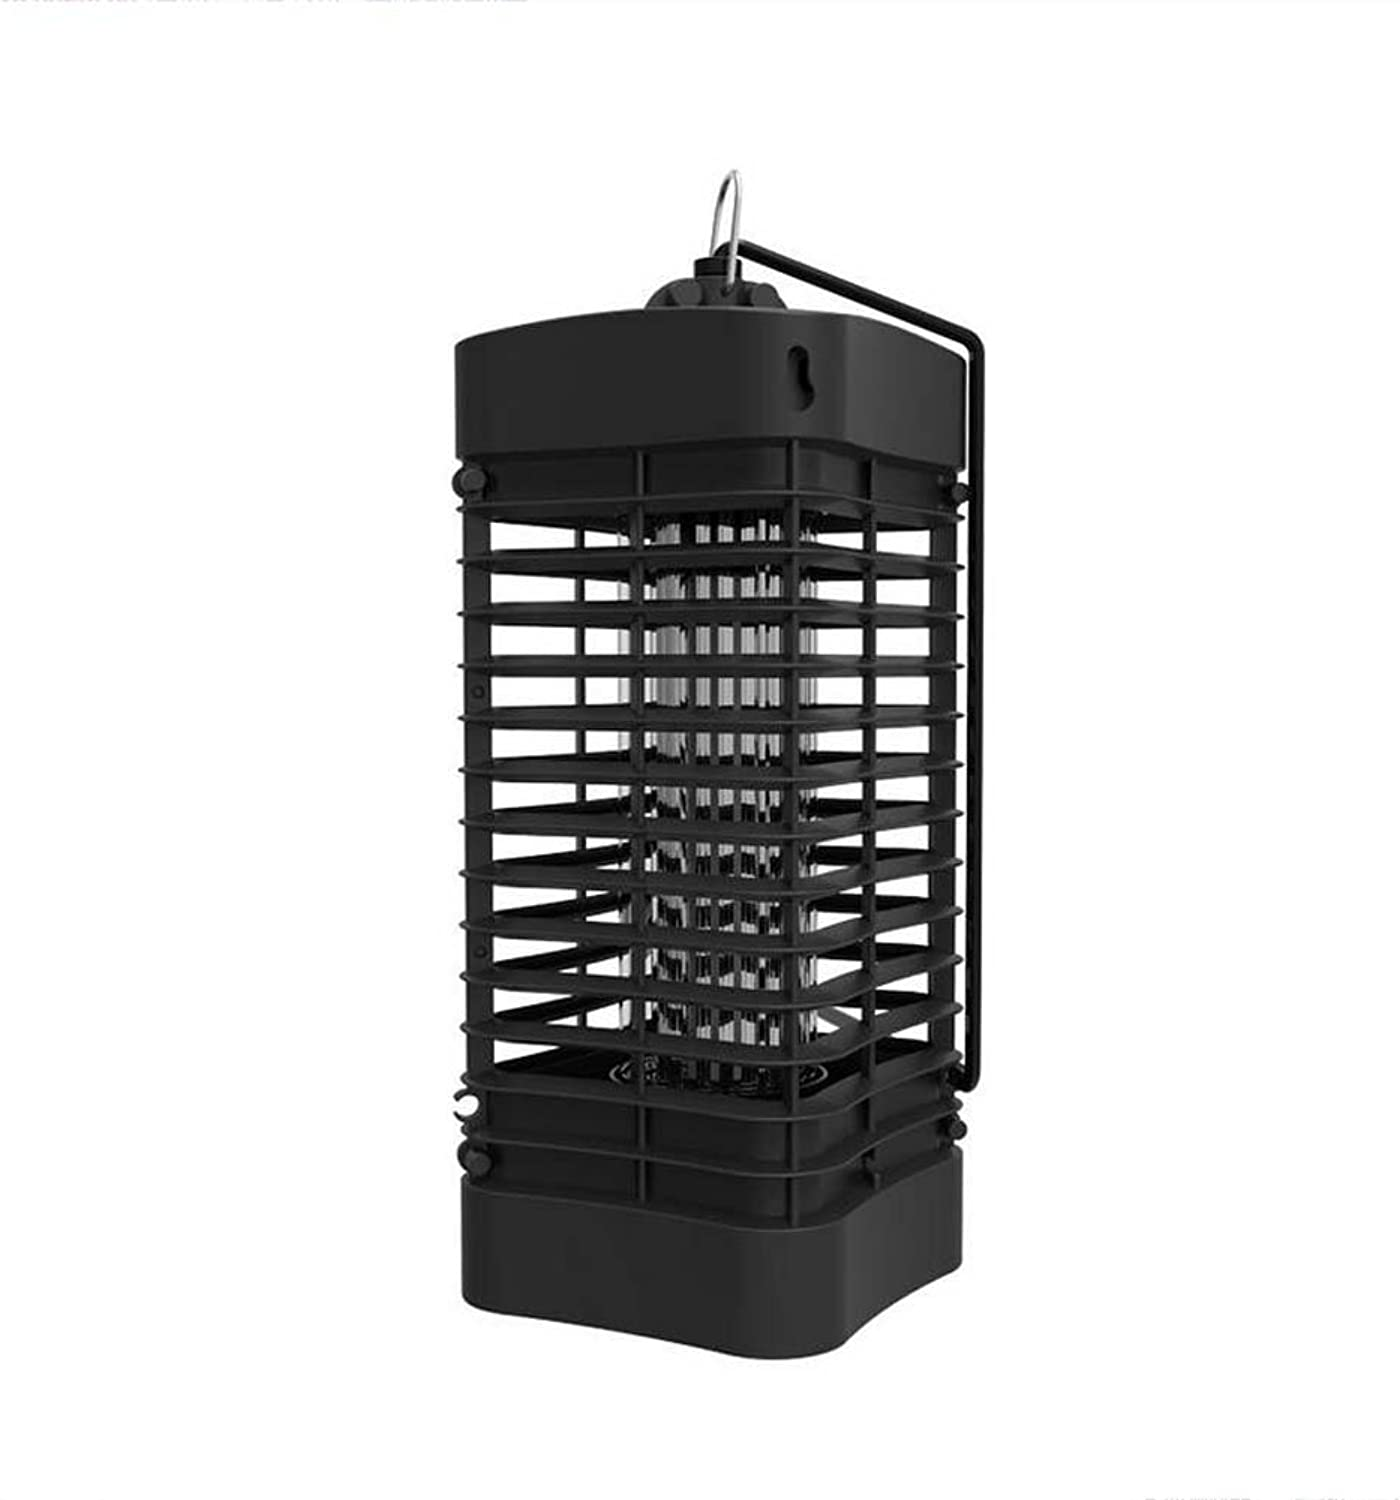 Household Photocatalyst Mosquito Lamp,Bug Zapper, No Radiation Electronic Mosquito Insect Killer,UltraQuiet LED Indoor Fly Pest Catcher for Home Kitchen, 4W, Black